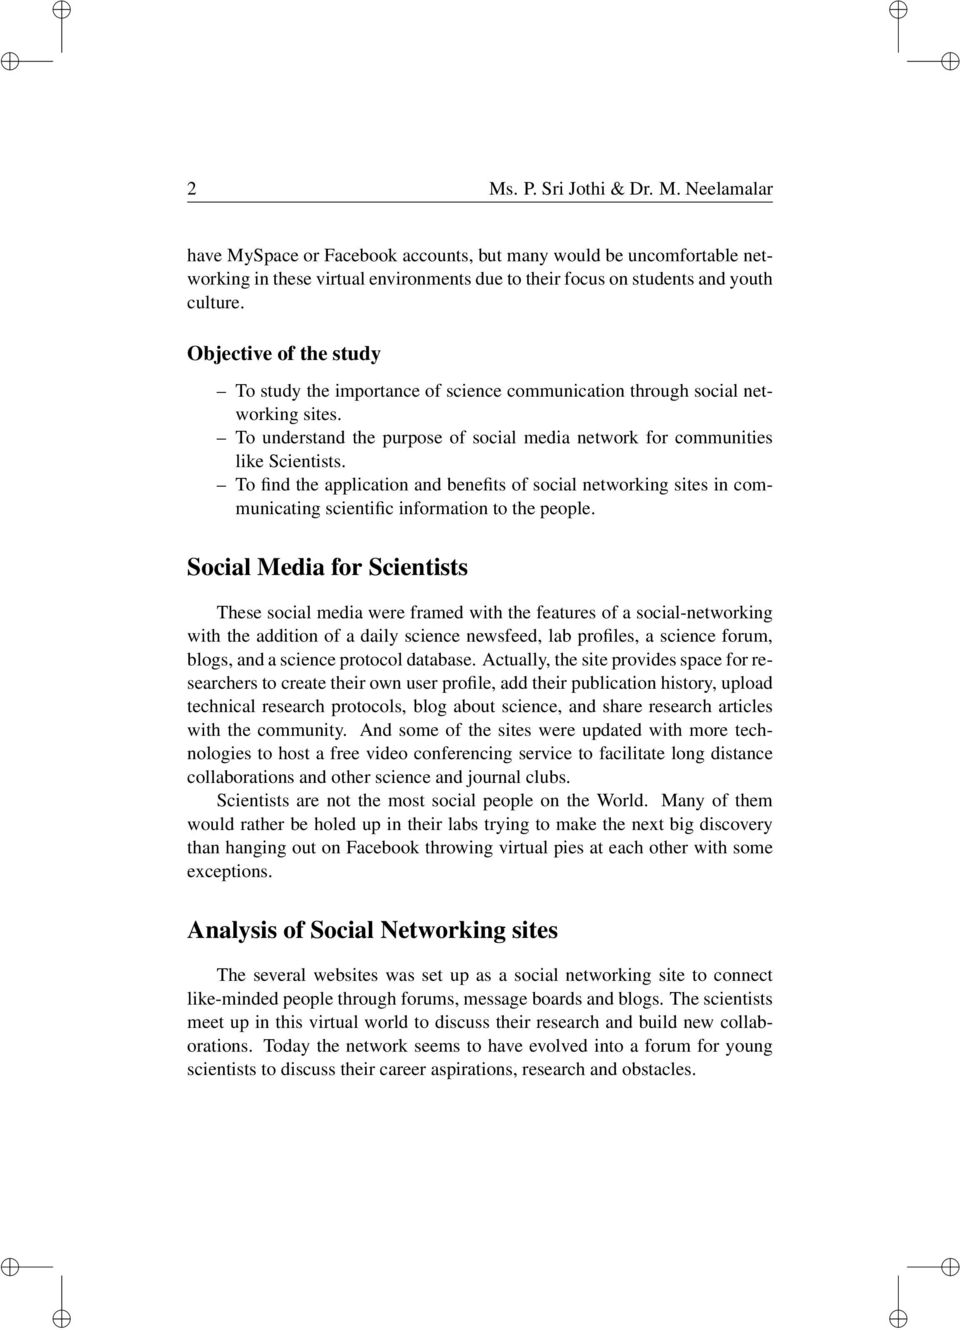 To find the application and benefits of social networking sites in communicating scientific information to the people.